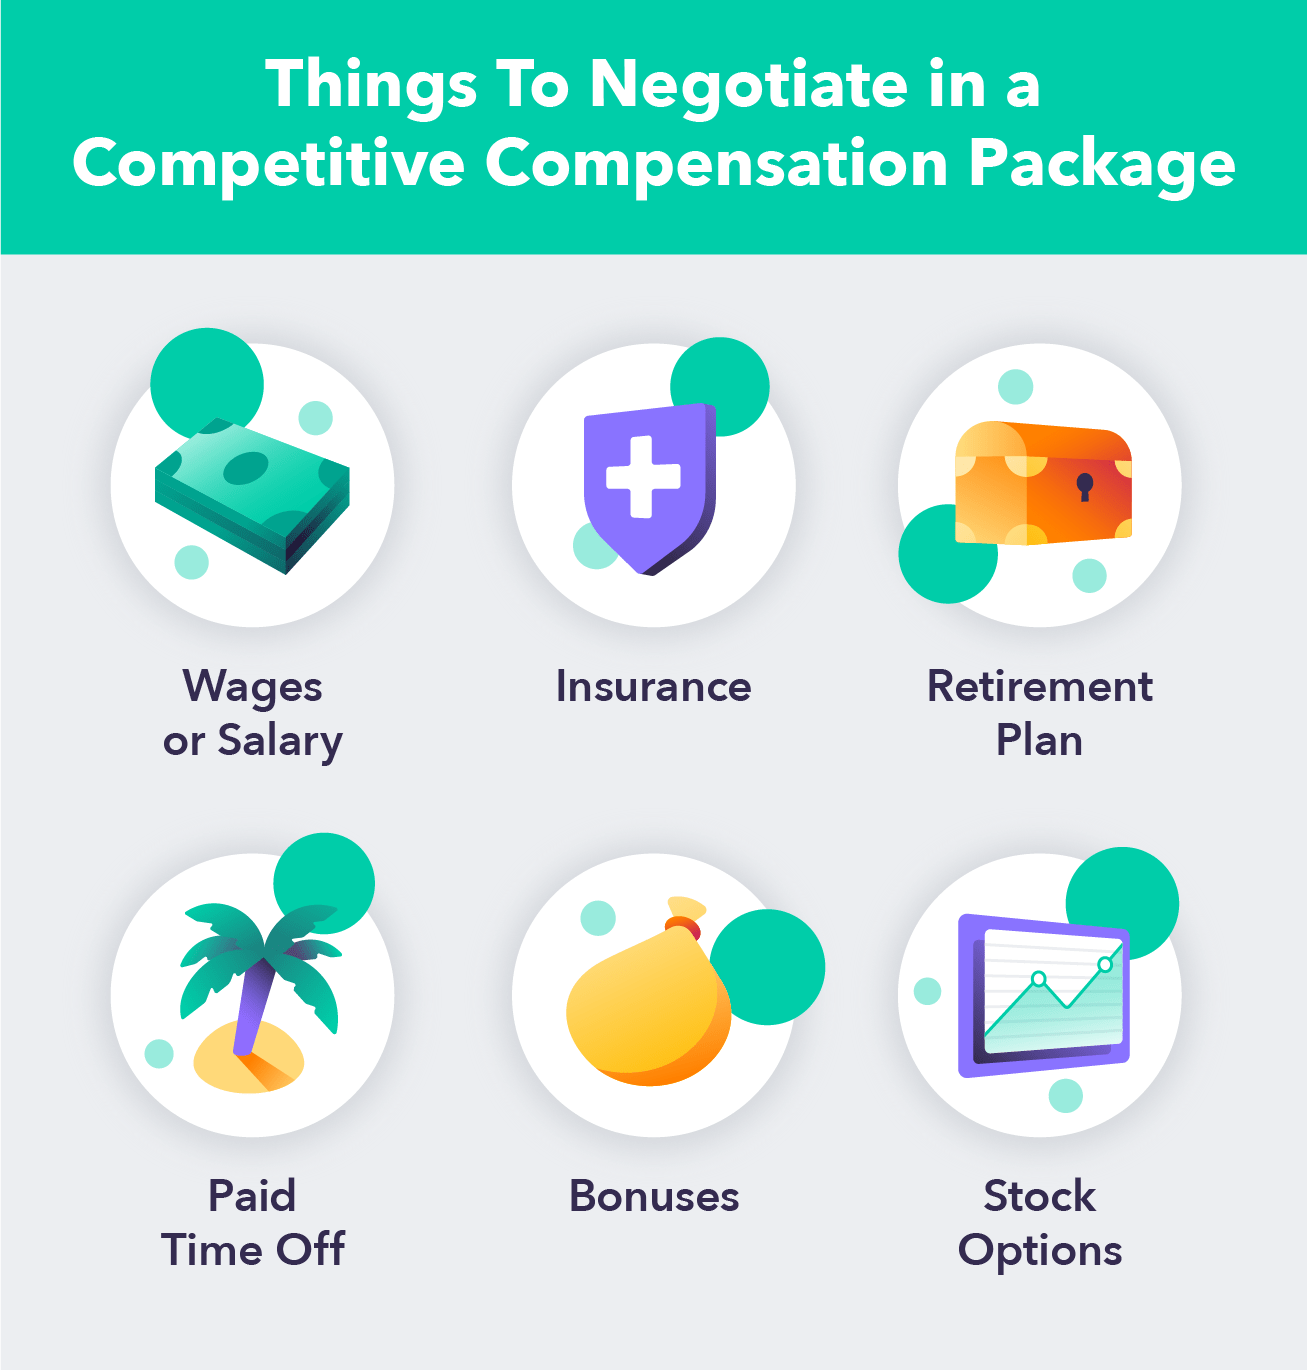 things-to-negotiate-in-a-competitive-compensation-package